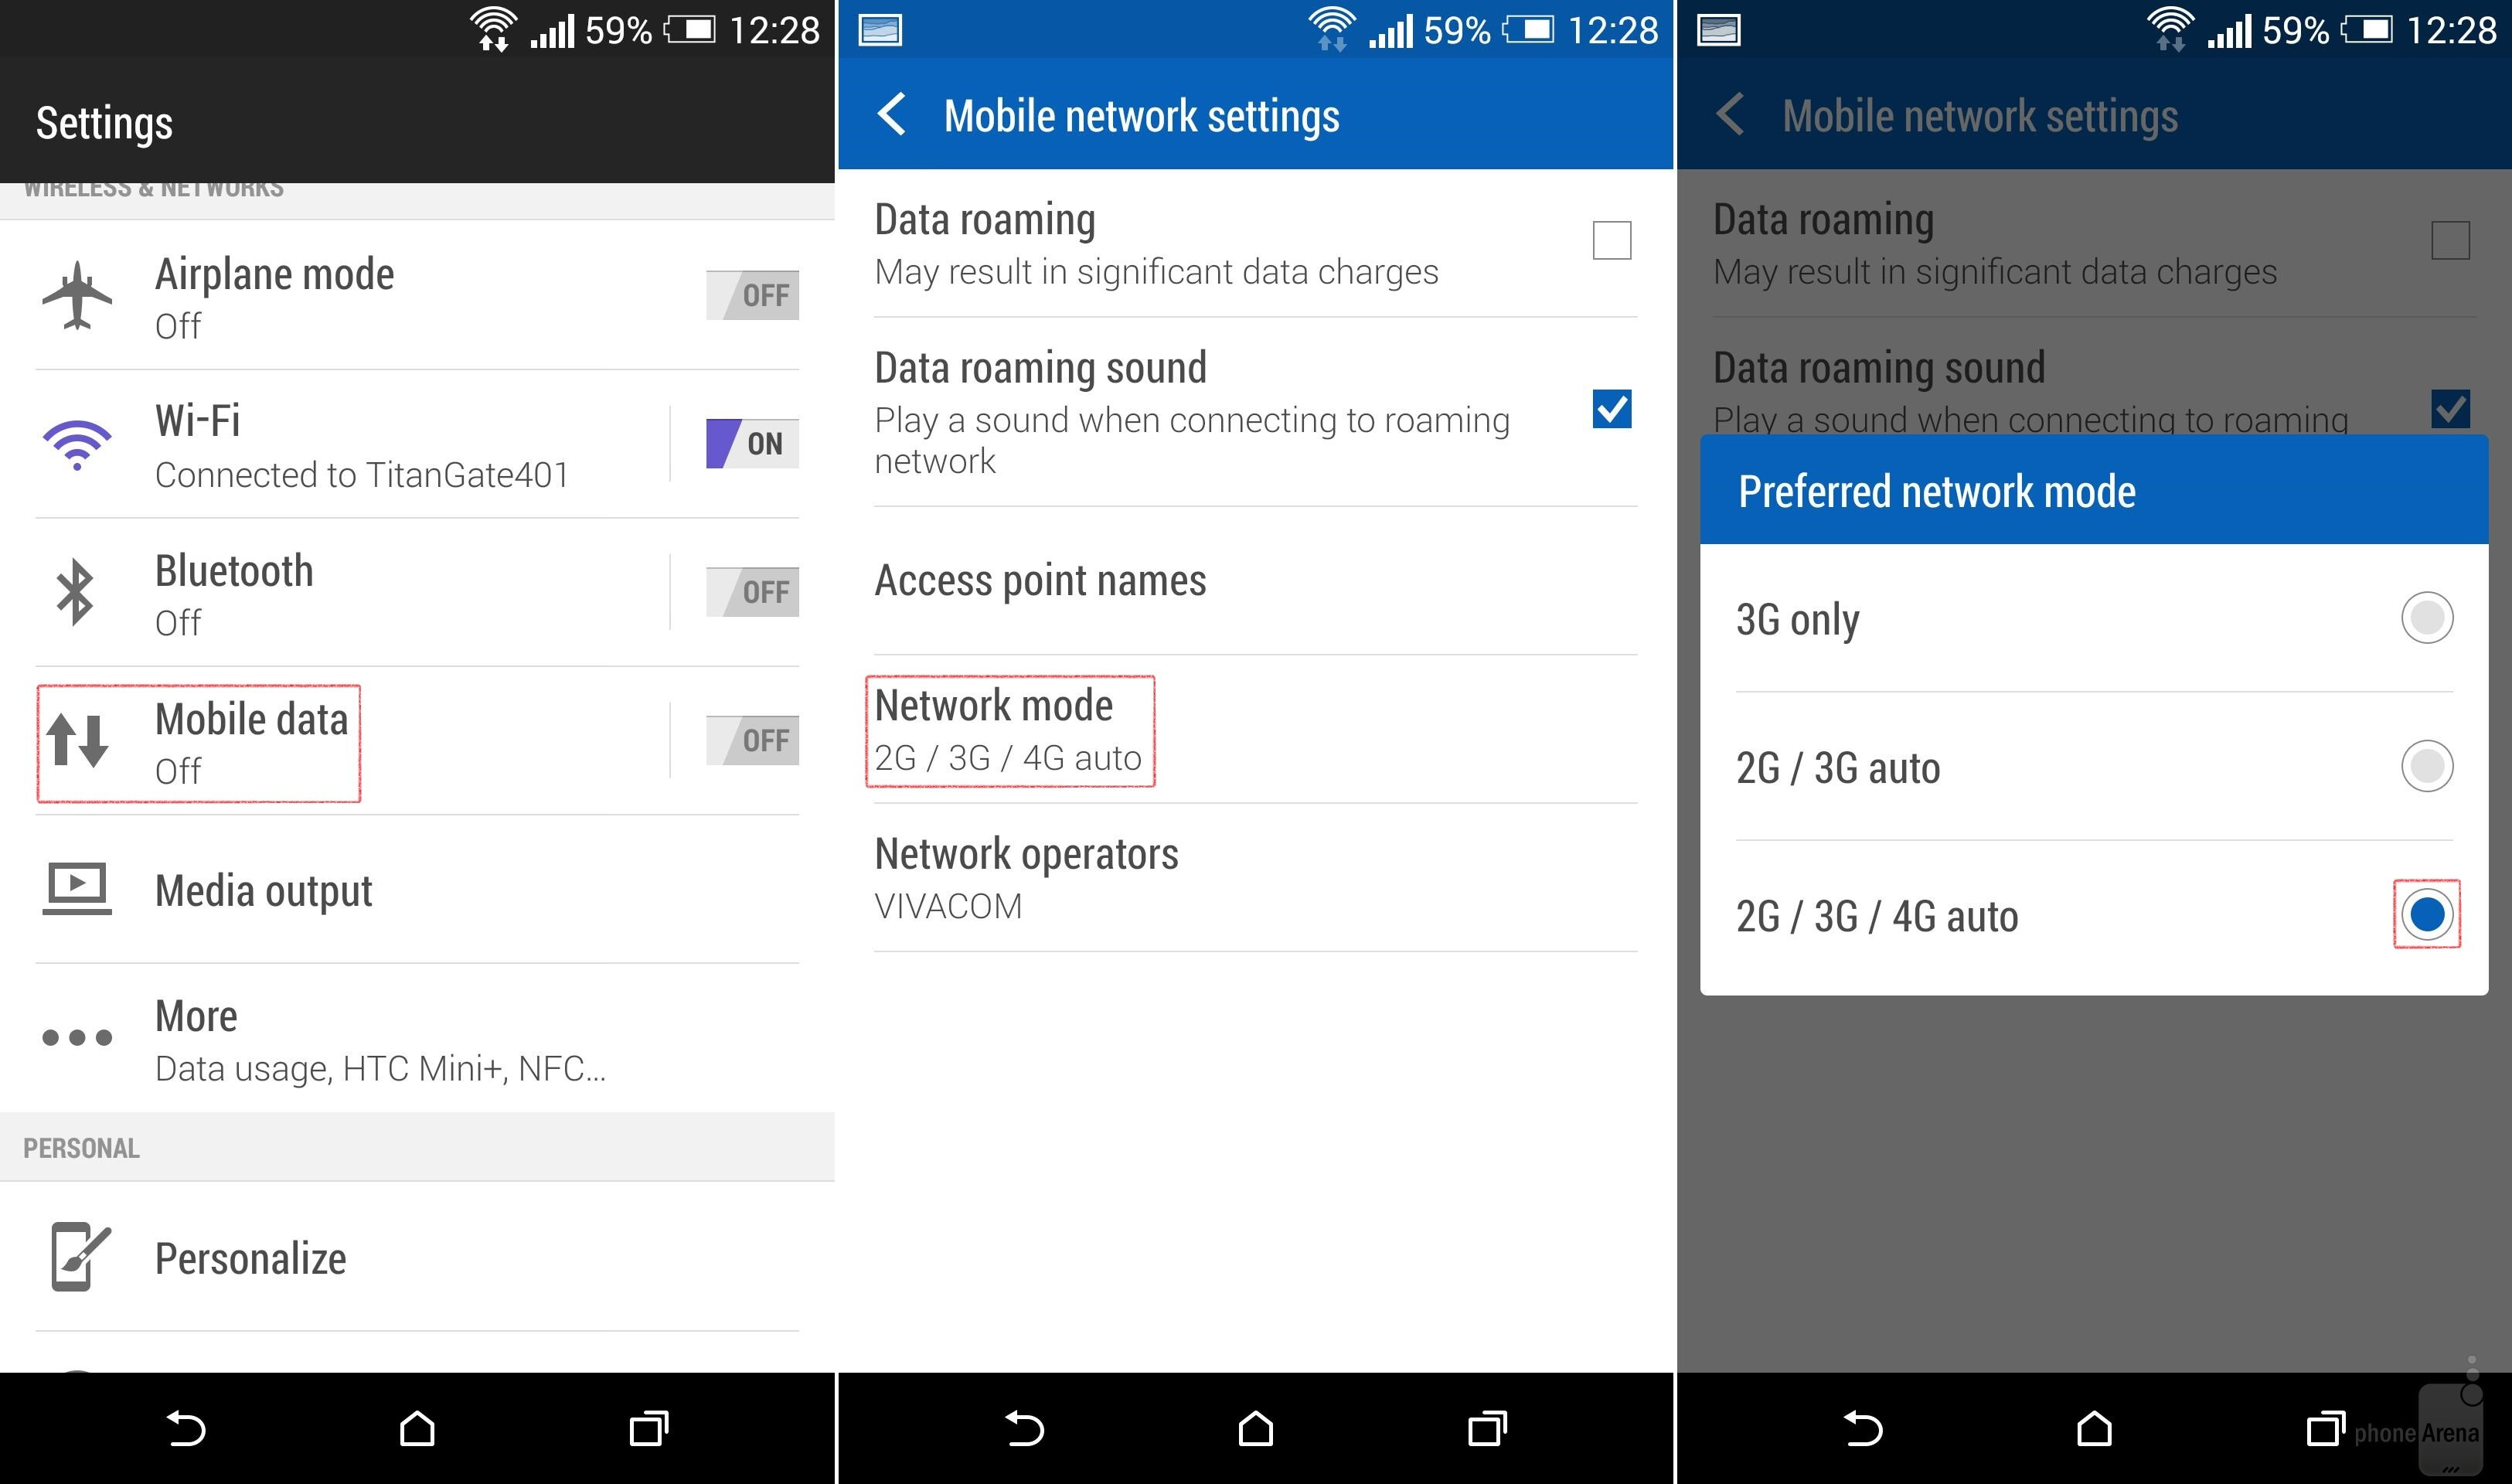 How To Turn 3g Or 4g Lte Off On Android In Order To Save